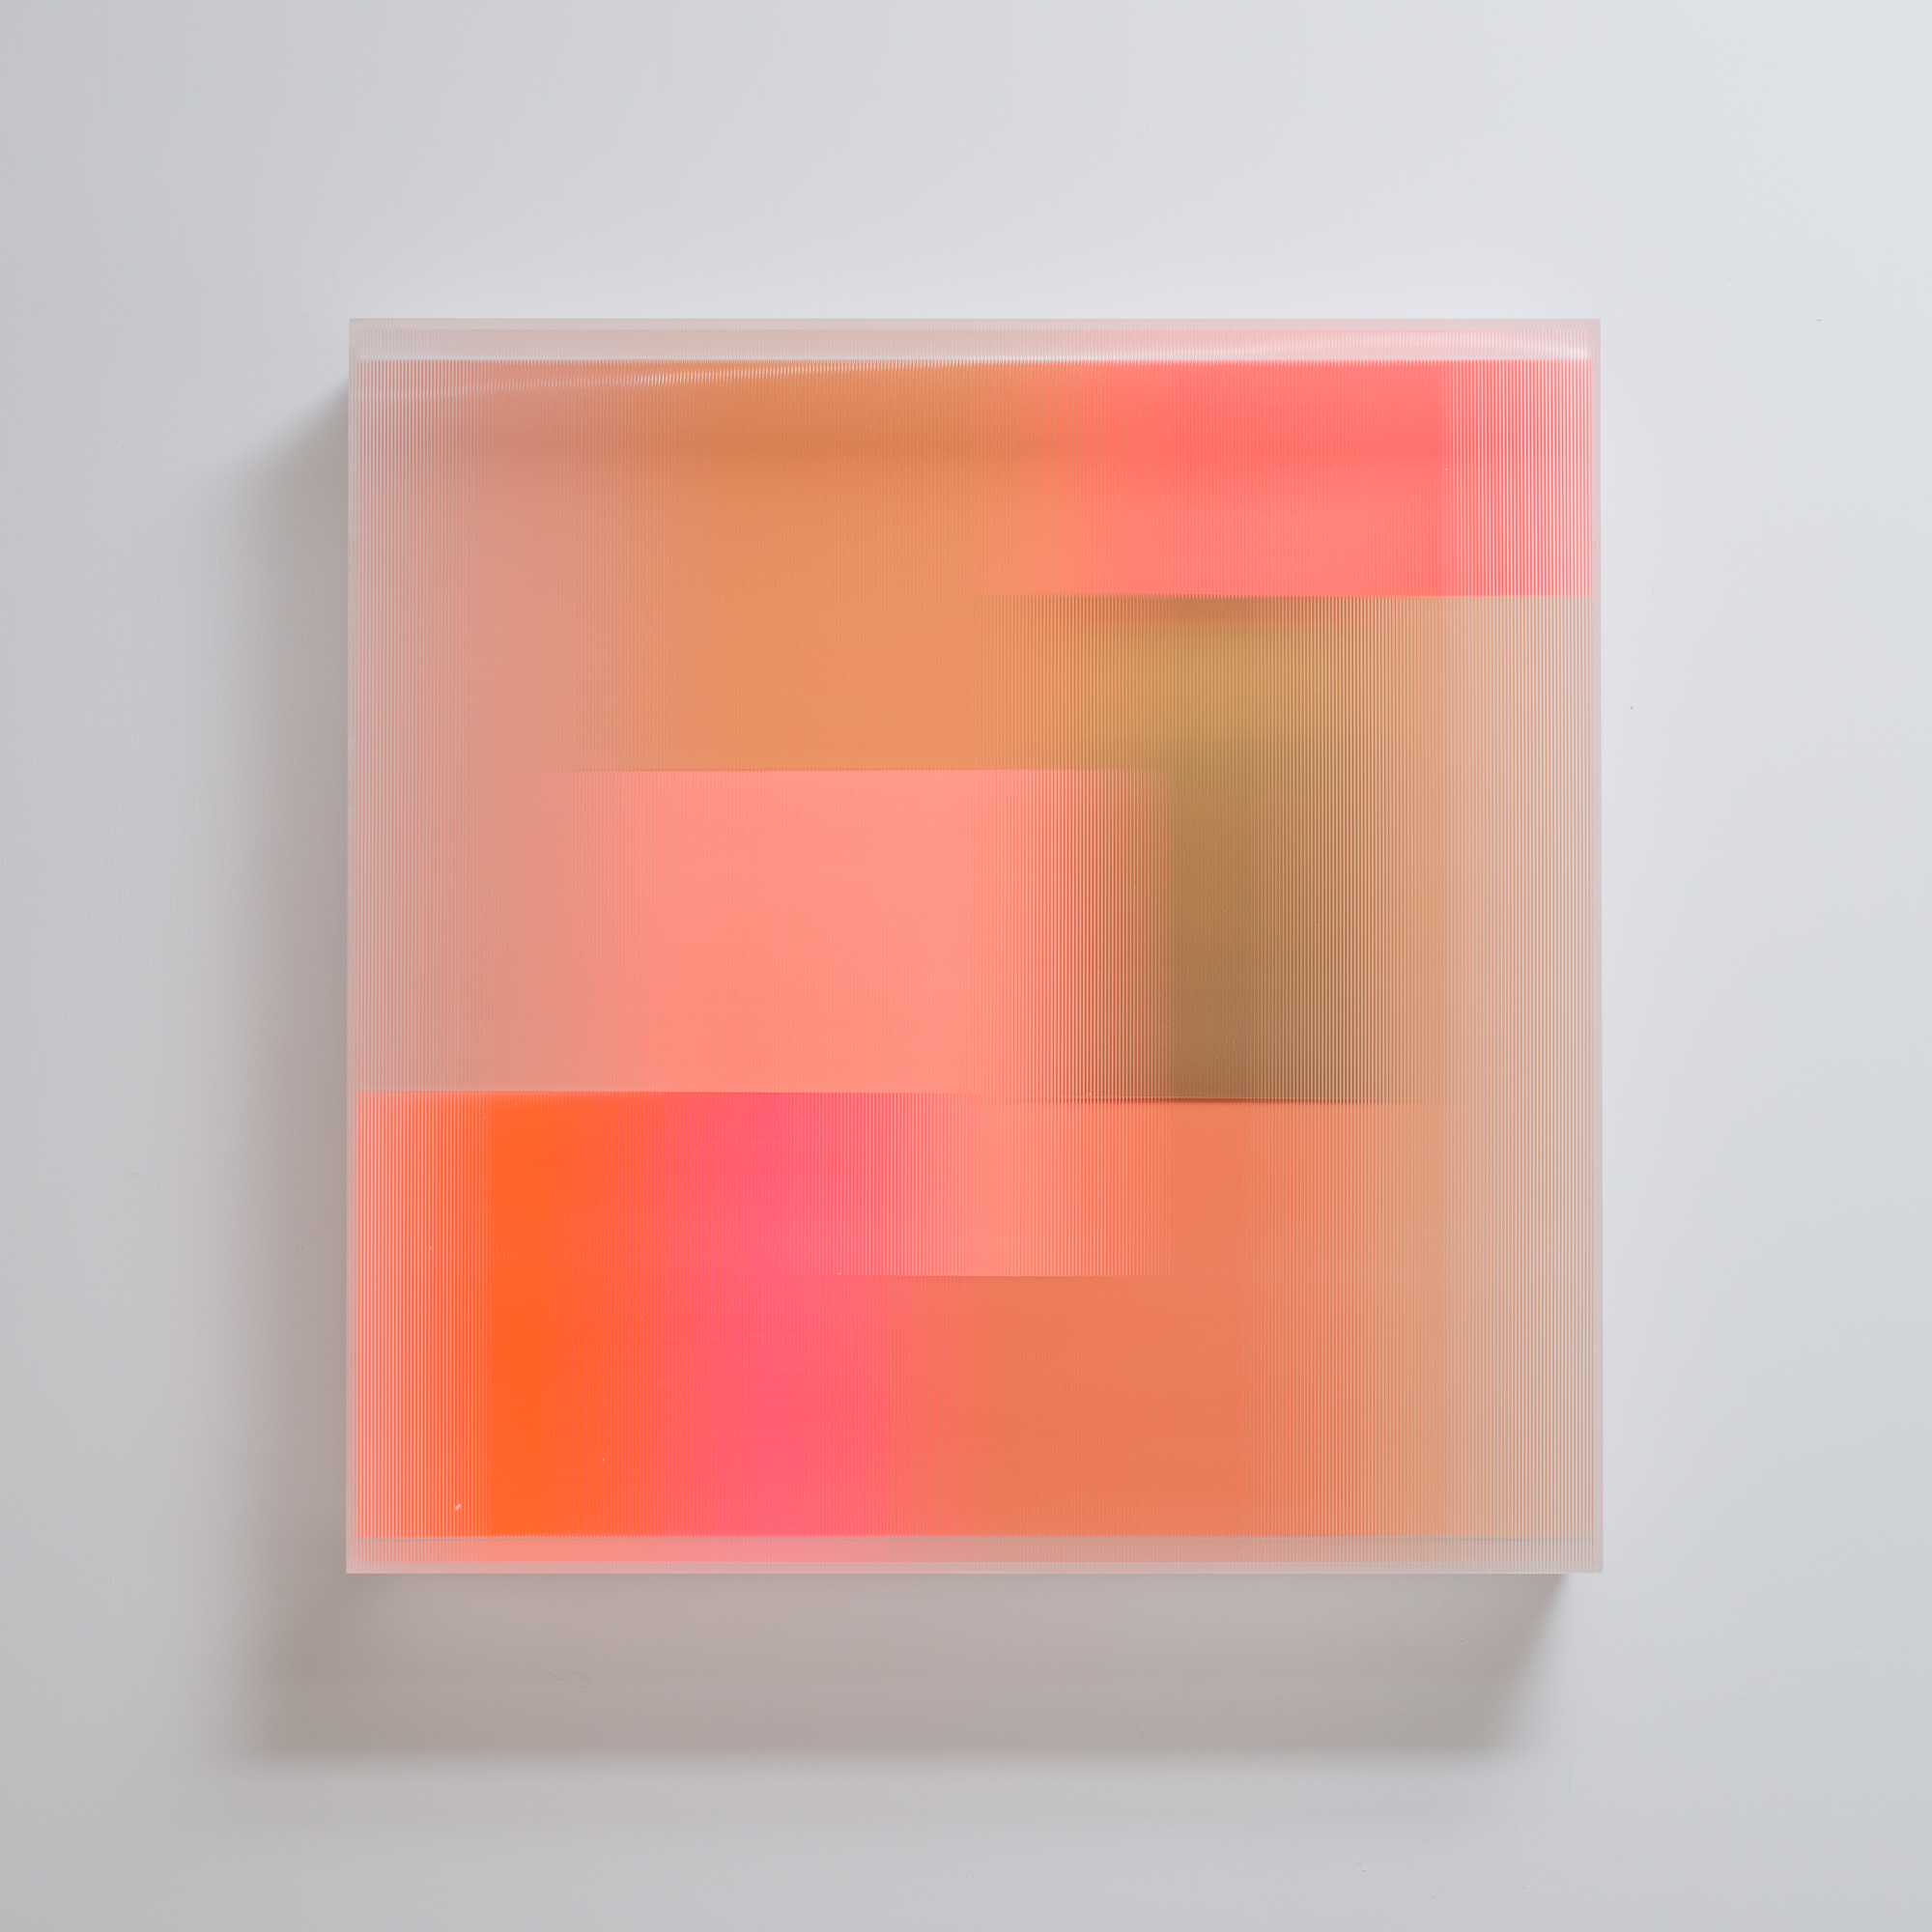 Christiane Grimm Be happy II 60x60x10cm 2019 Mixed media and acrylic glass